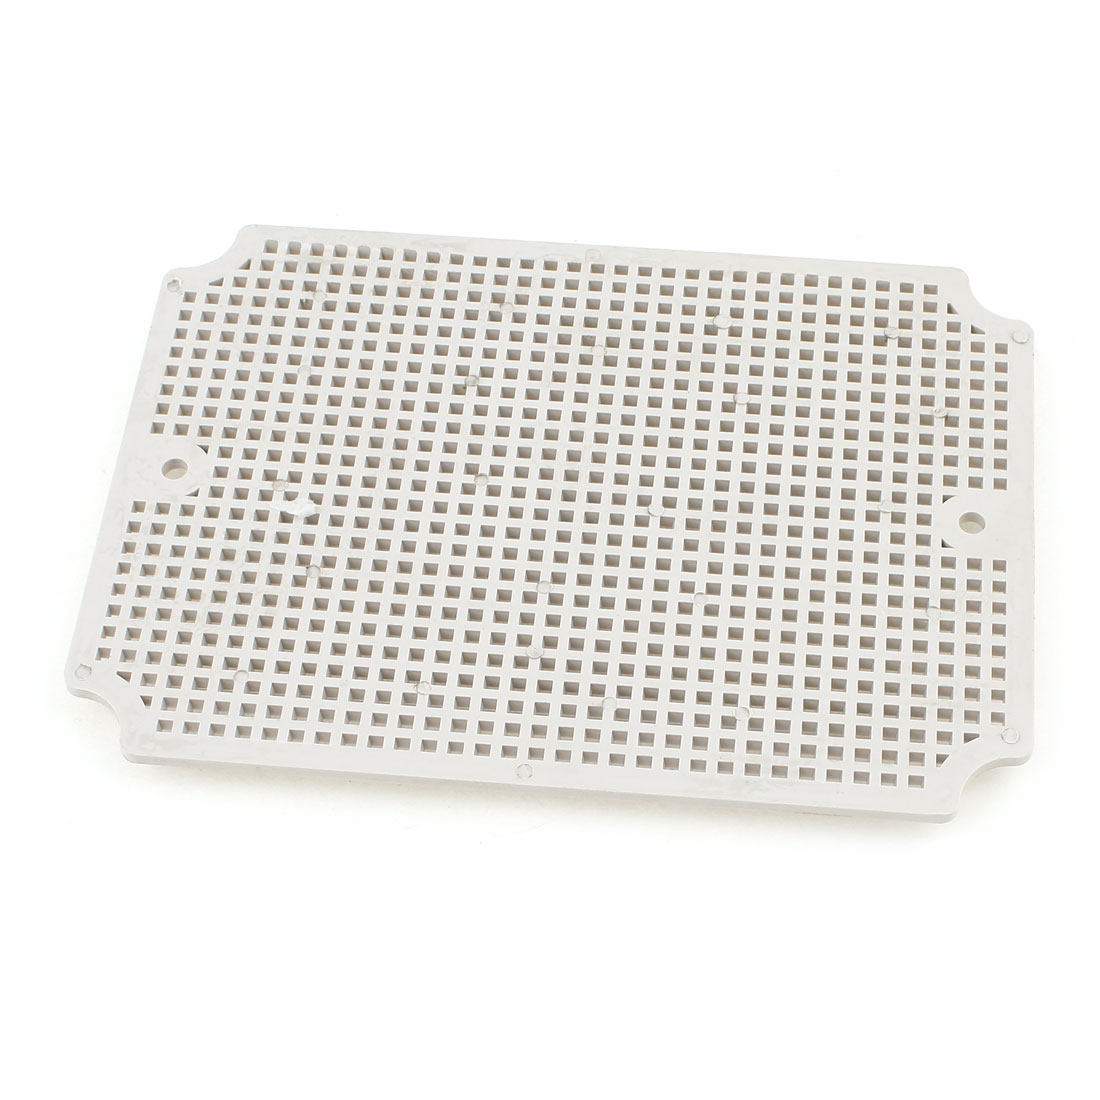 Gray Plastic Mesh Enclosure Mounting Plate for 200 x 150mm Junction Box